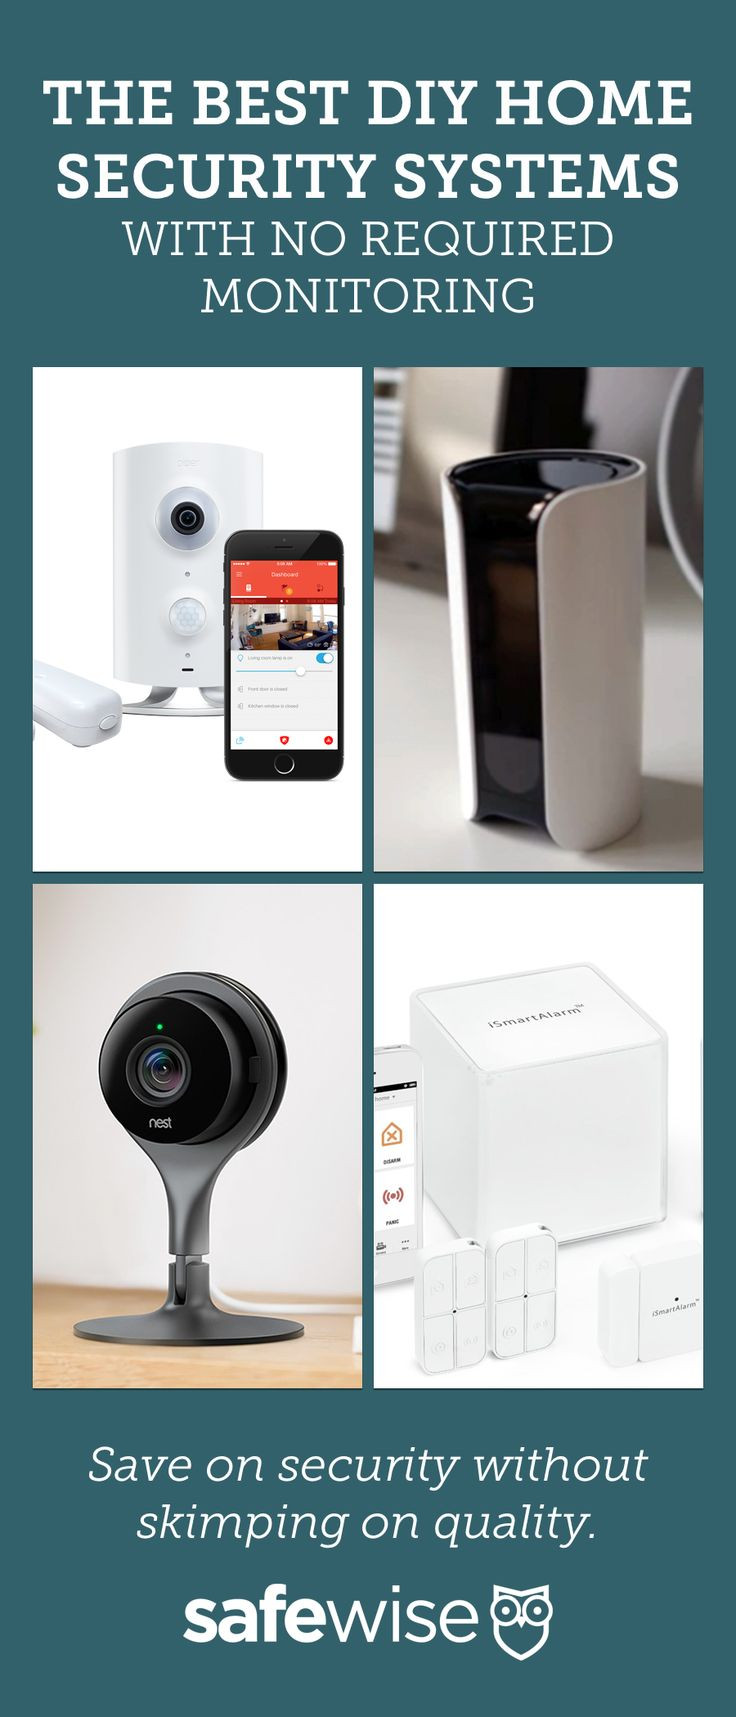 DIY Home Security Monitoring  79 best images about DIY Home Security on Pinterest